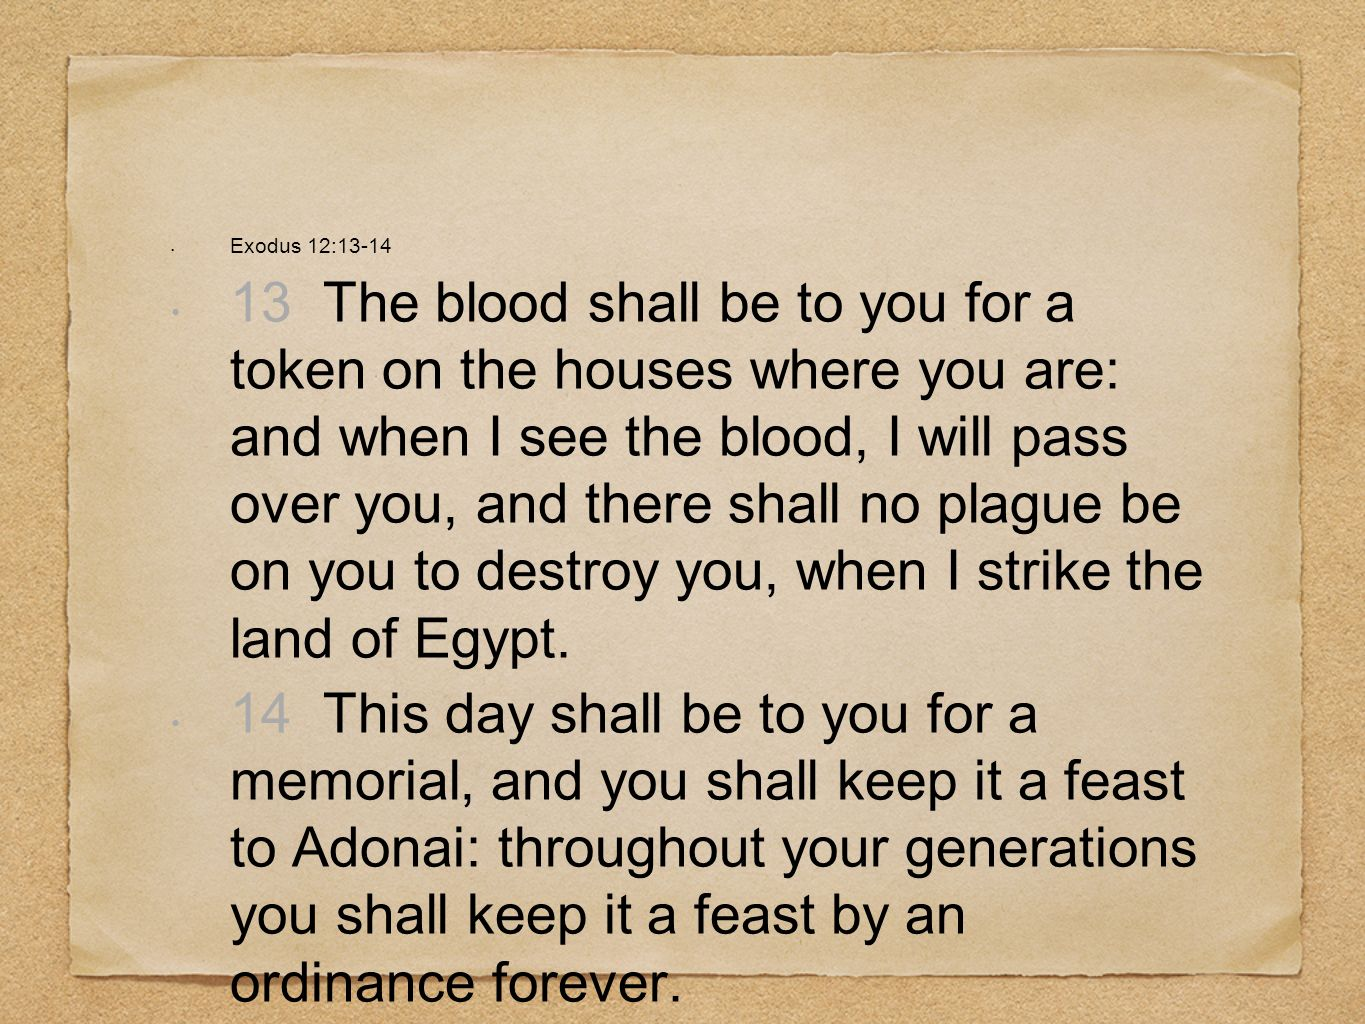 Exodus 12:13-14 13 The blood shall be to you for a token on the houses where you are: and when I see the blood, I will pass over you, and there shall